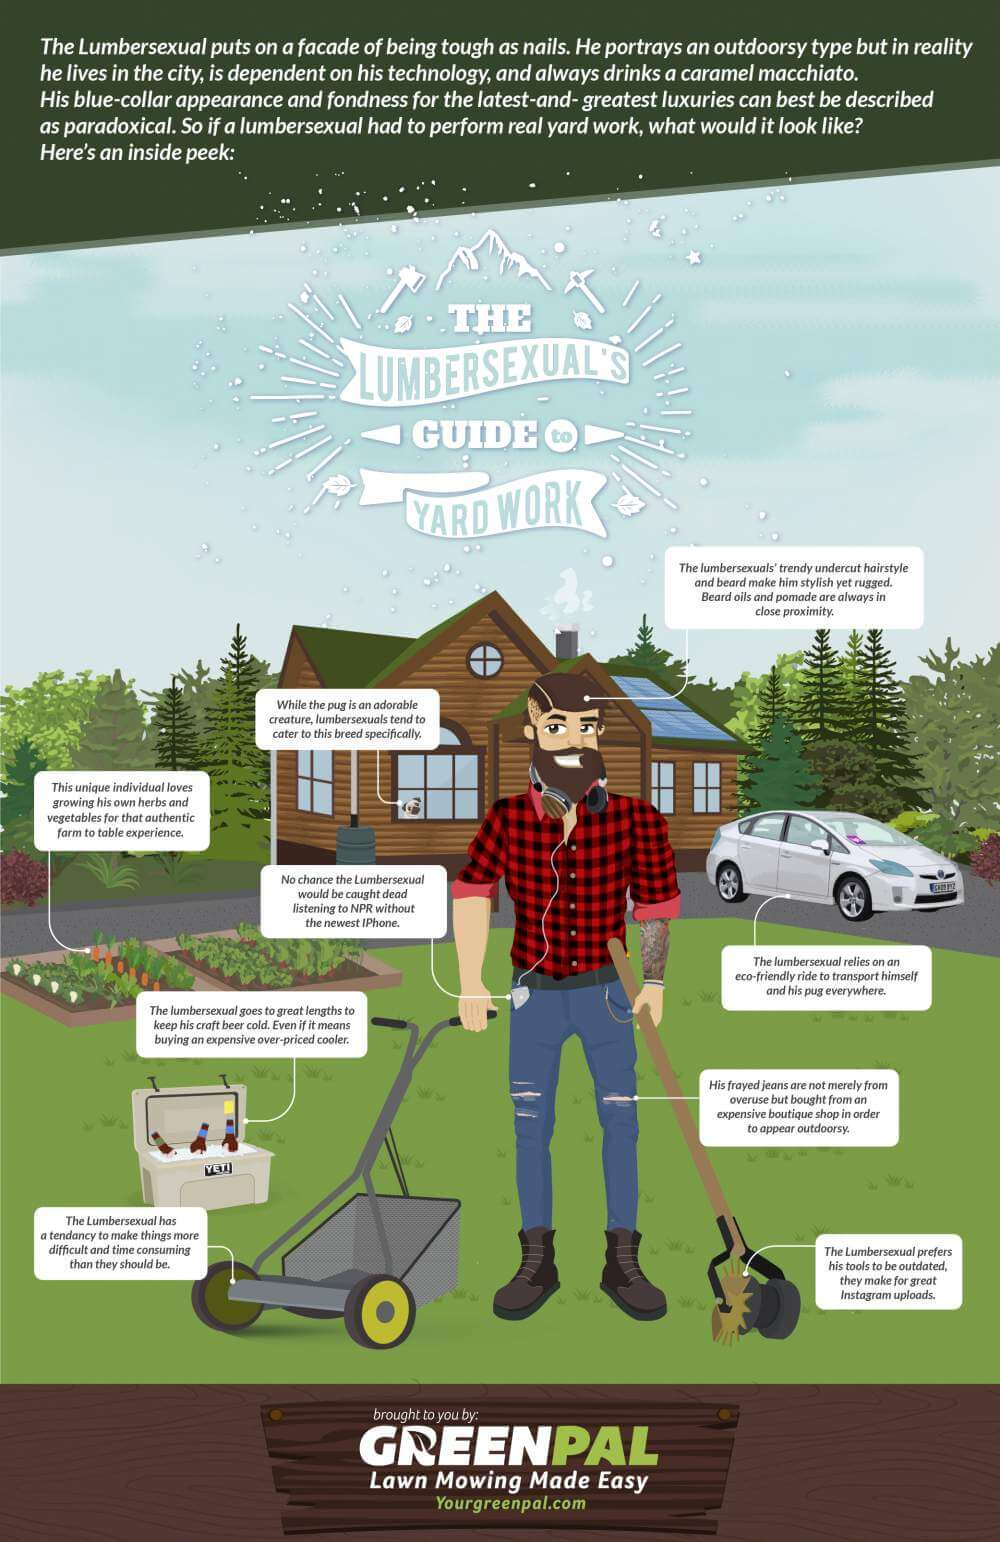 Lumbersexual Lawn Care Duties